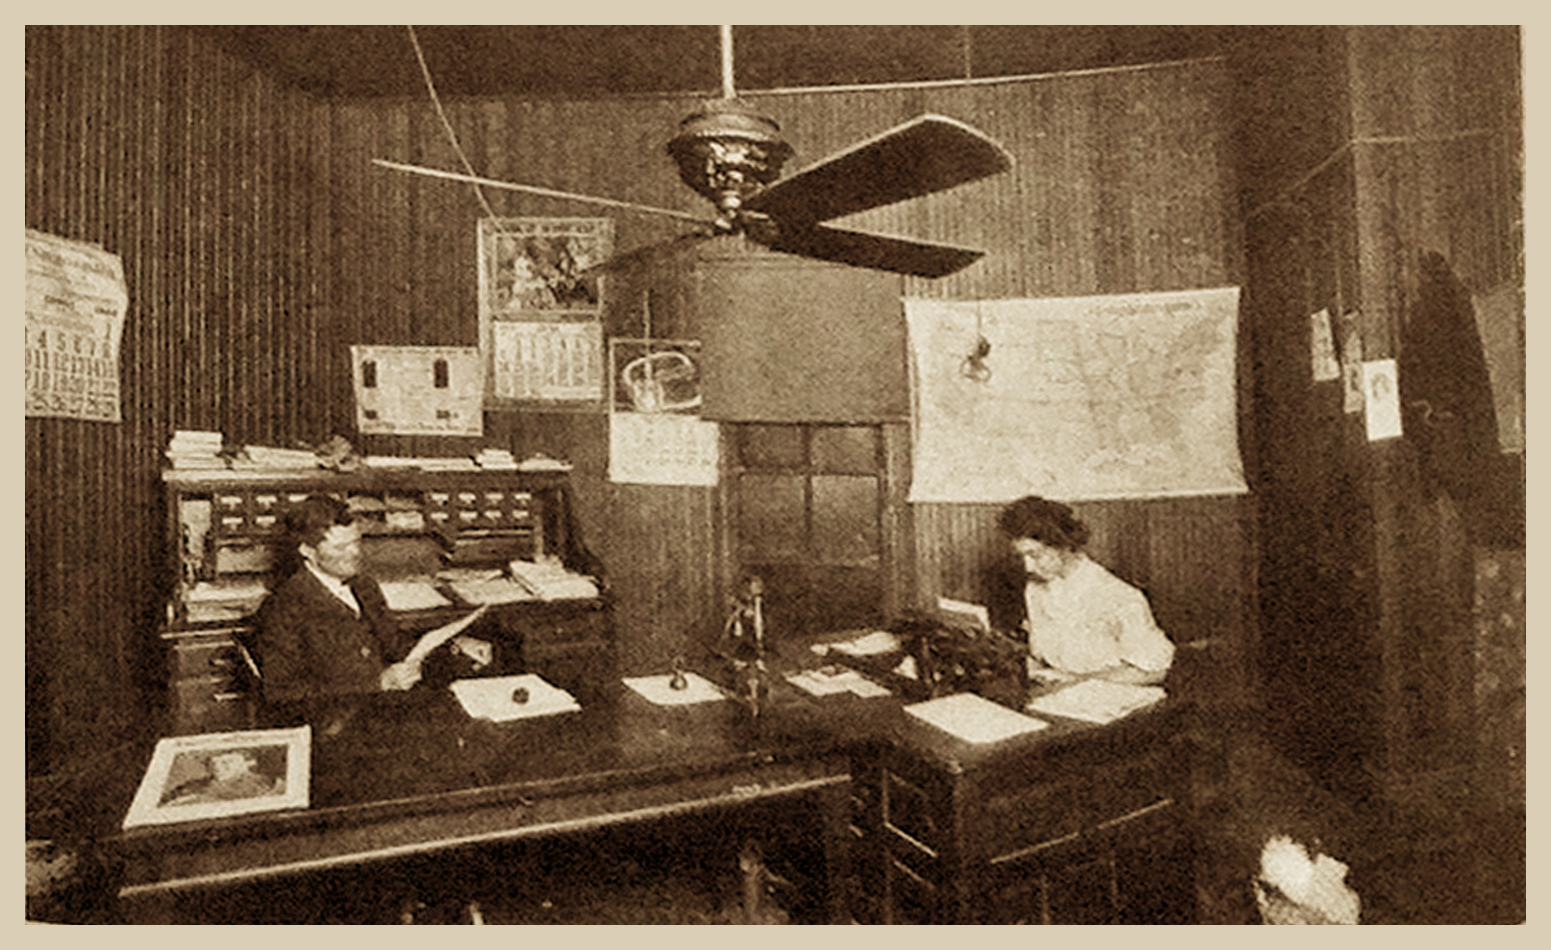 Interior J.S. Hunt's Office [at left] at Hodge, La. (1909)